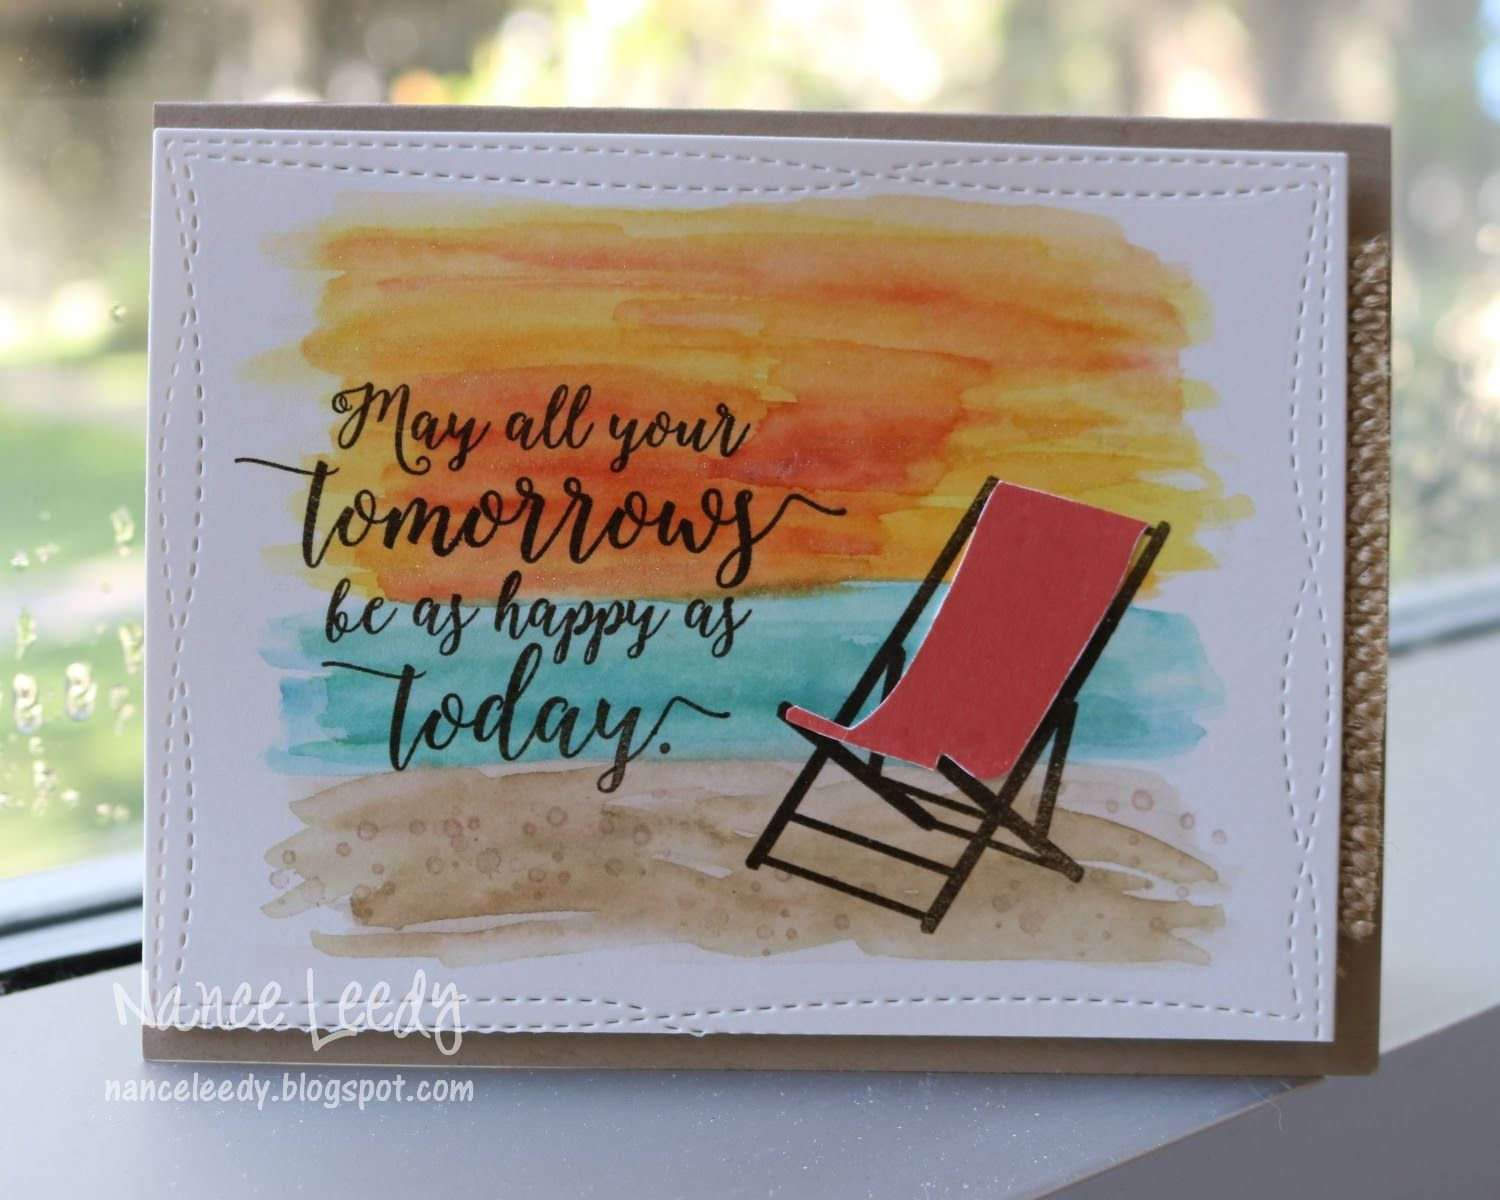 Tomorrows as happy as today pp catalog pinterest